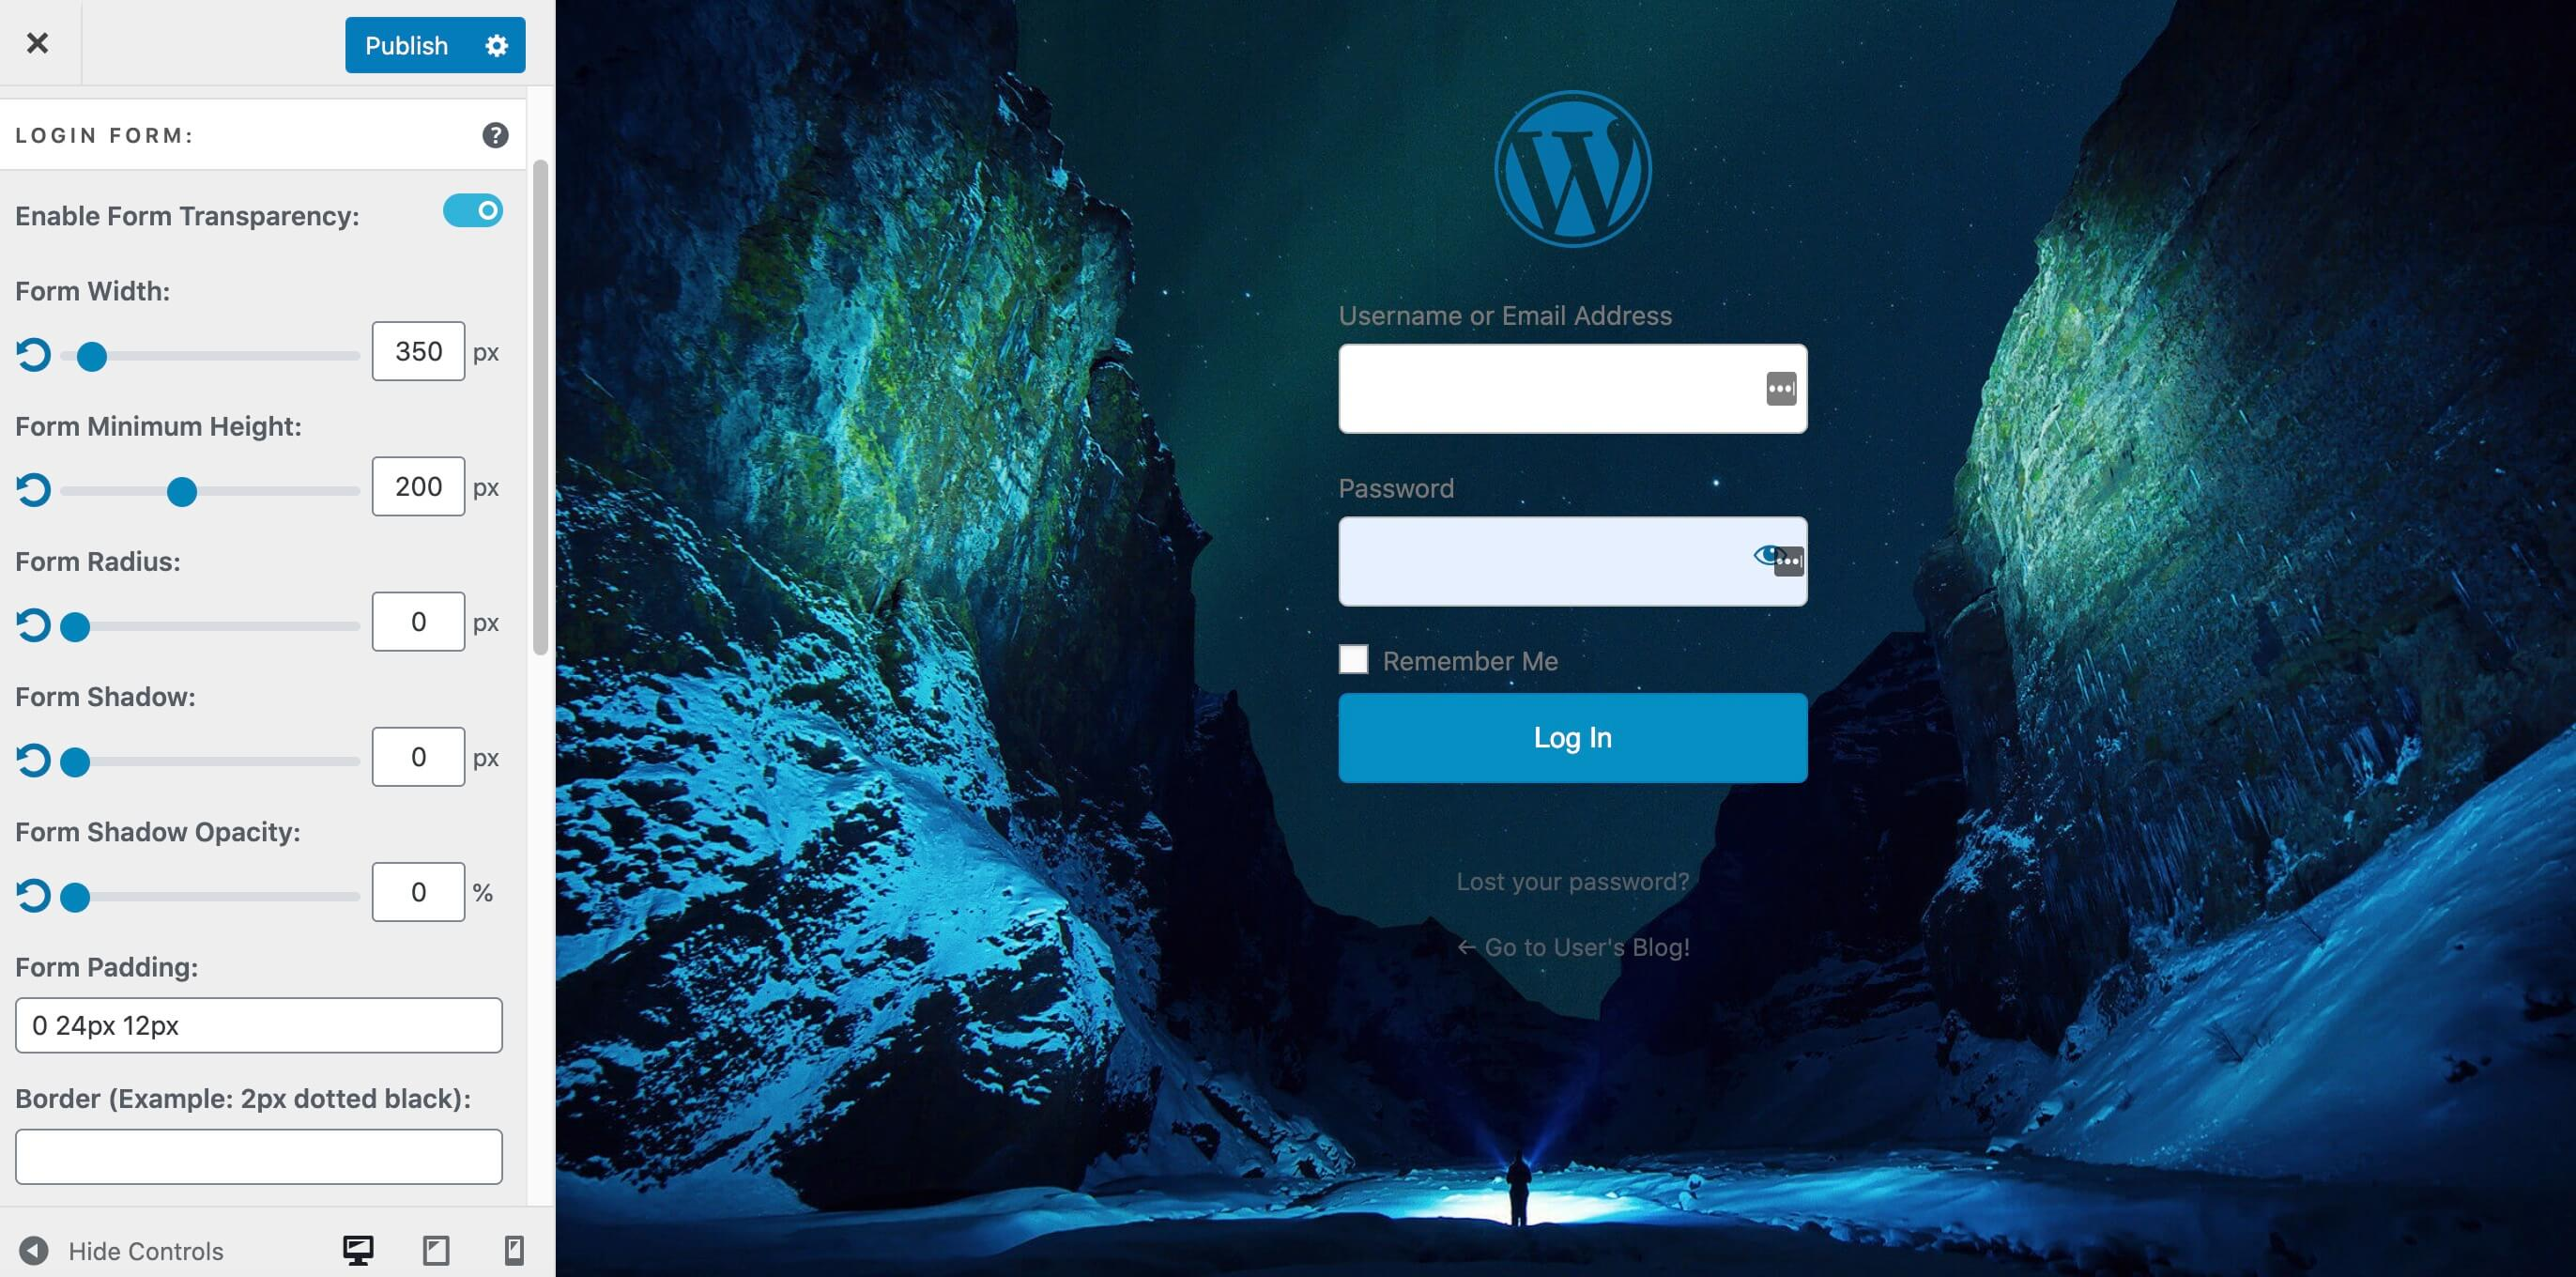 A custom WordPress login page featuring a transparent form.